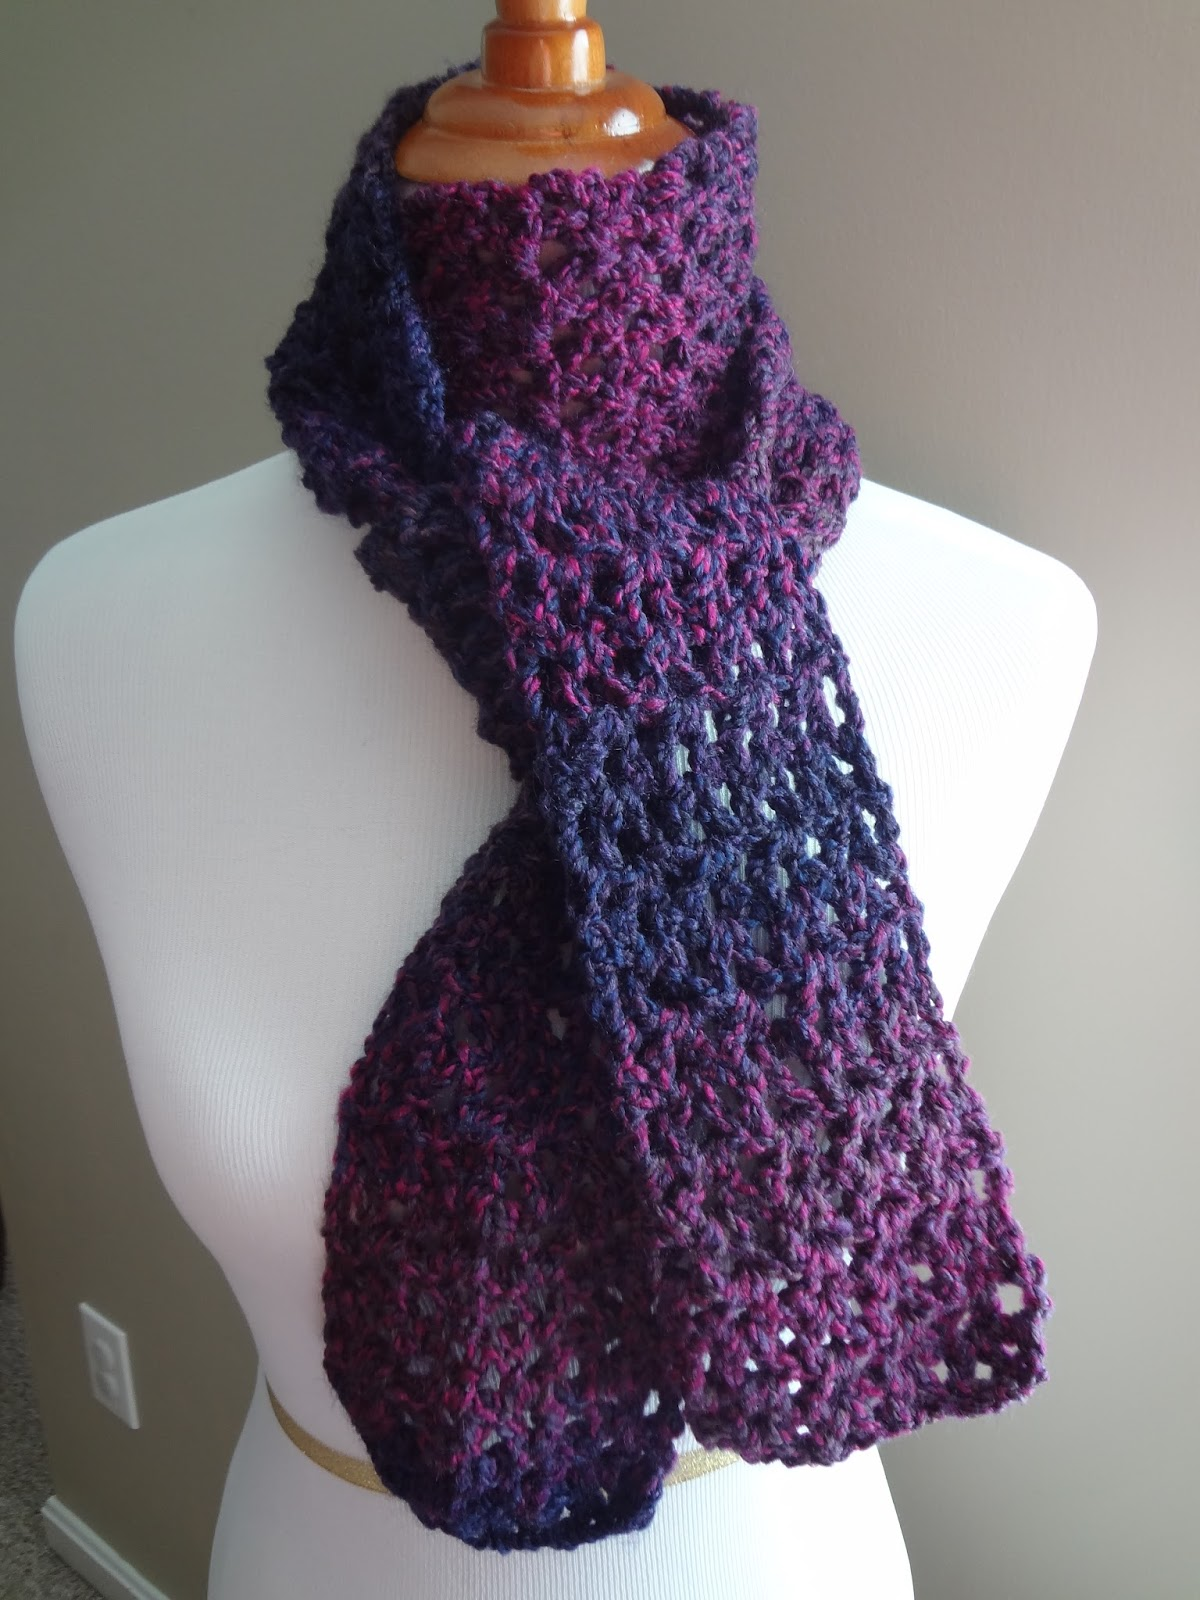 Adventures in Stitching Free Crochet PatternBlueberry Pie Scarf Crochet Children's Scarf Patterns Free